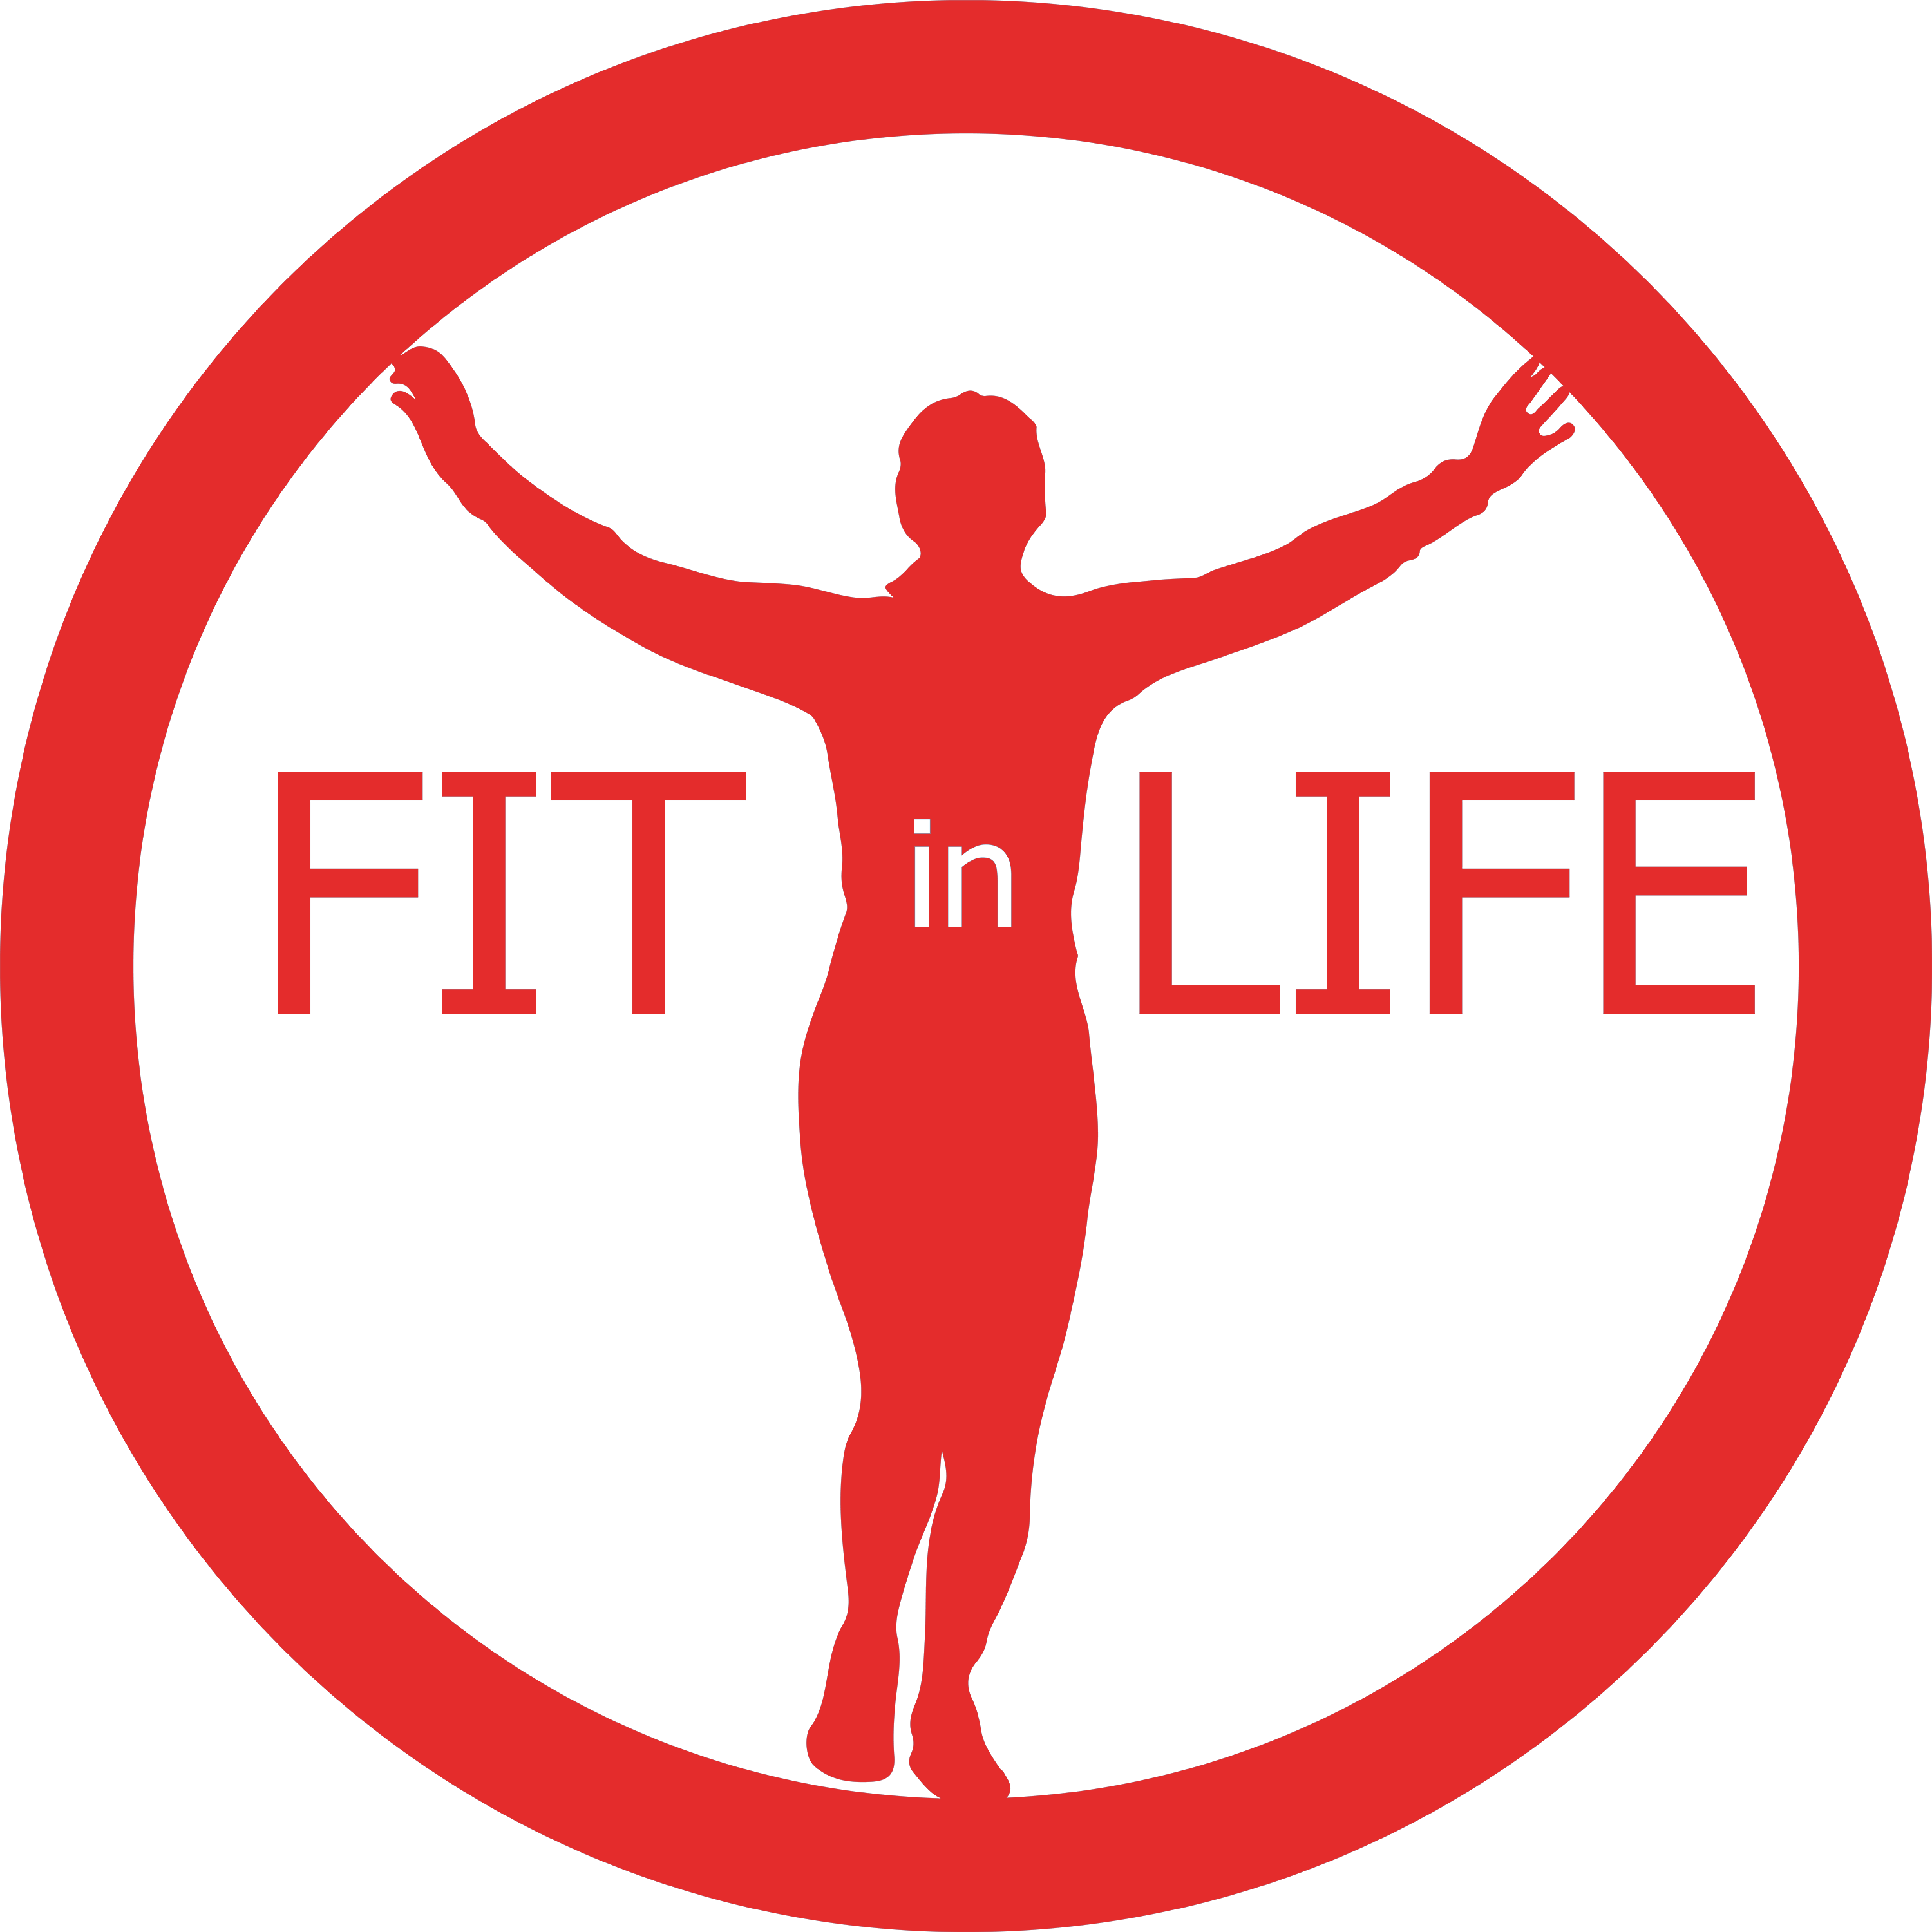 FIT in LIFE